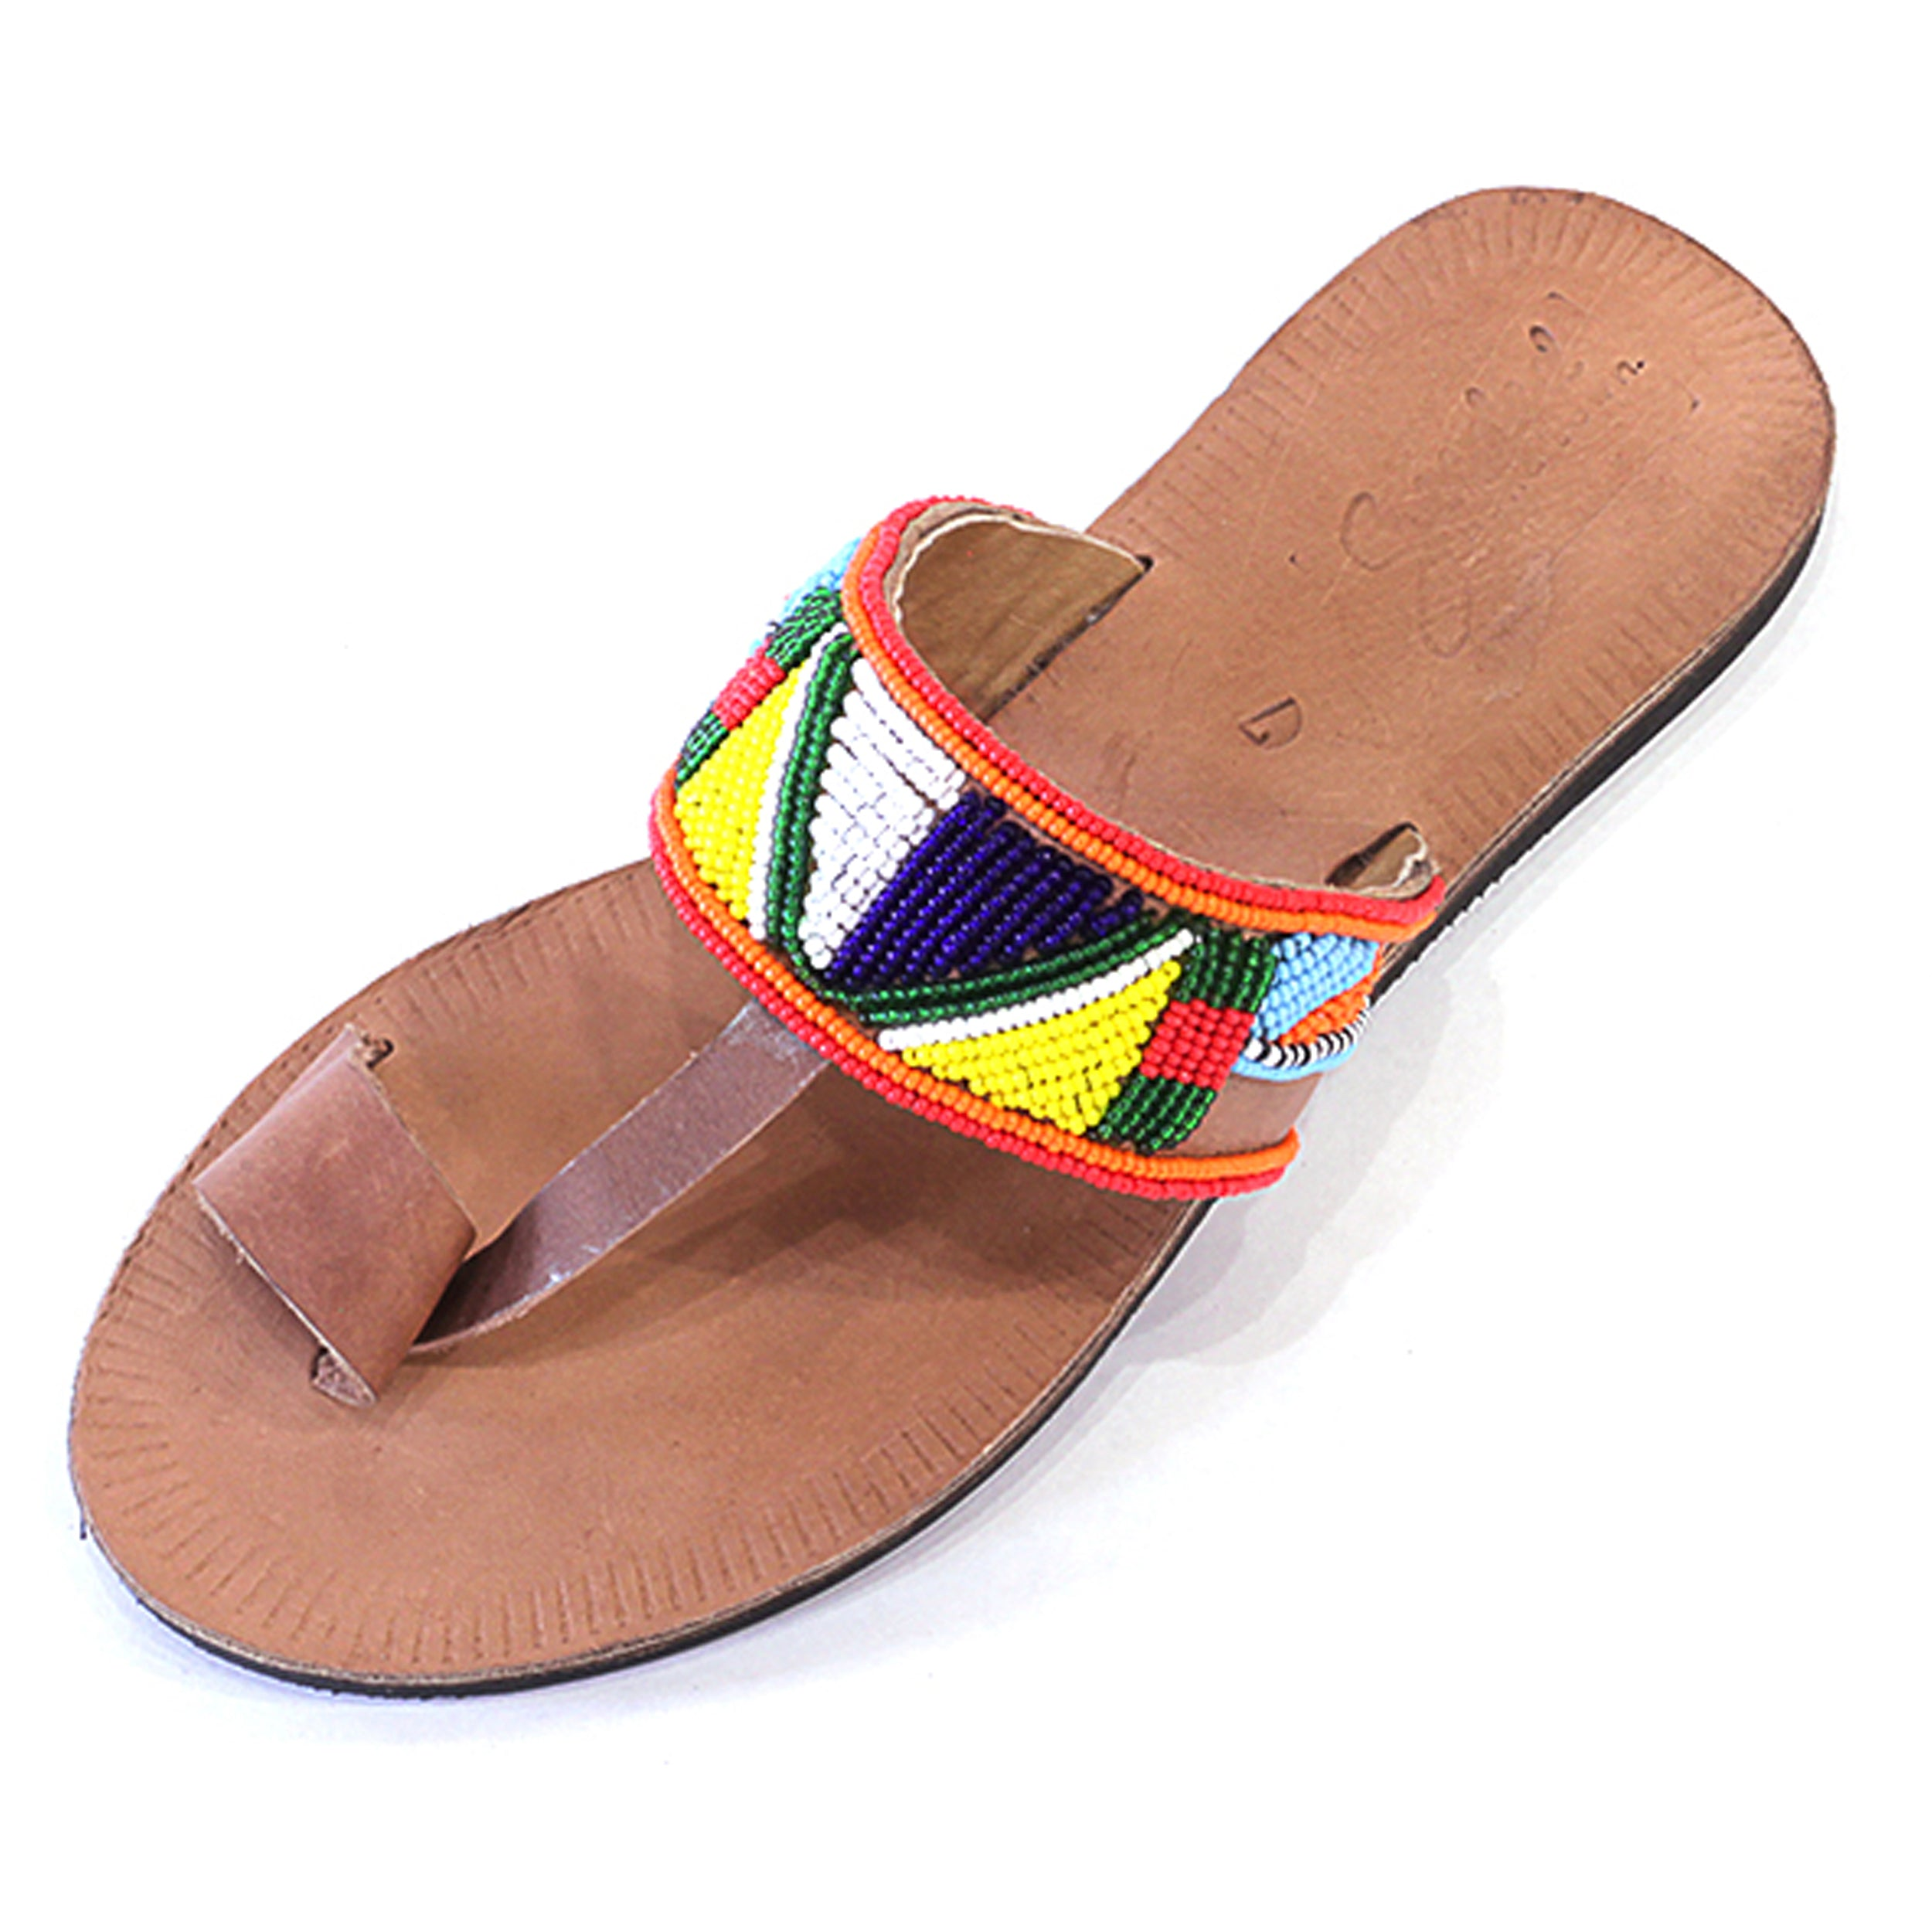 fe8e3272913f Fair trade sandals ethically handmade by empowered artisans in East Africa.